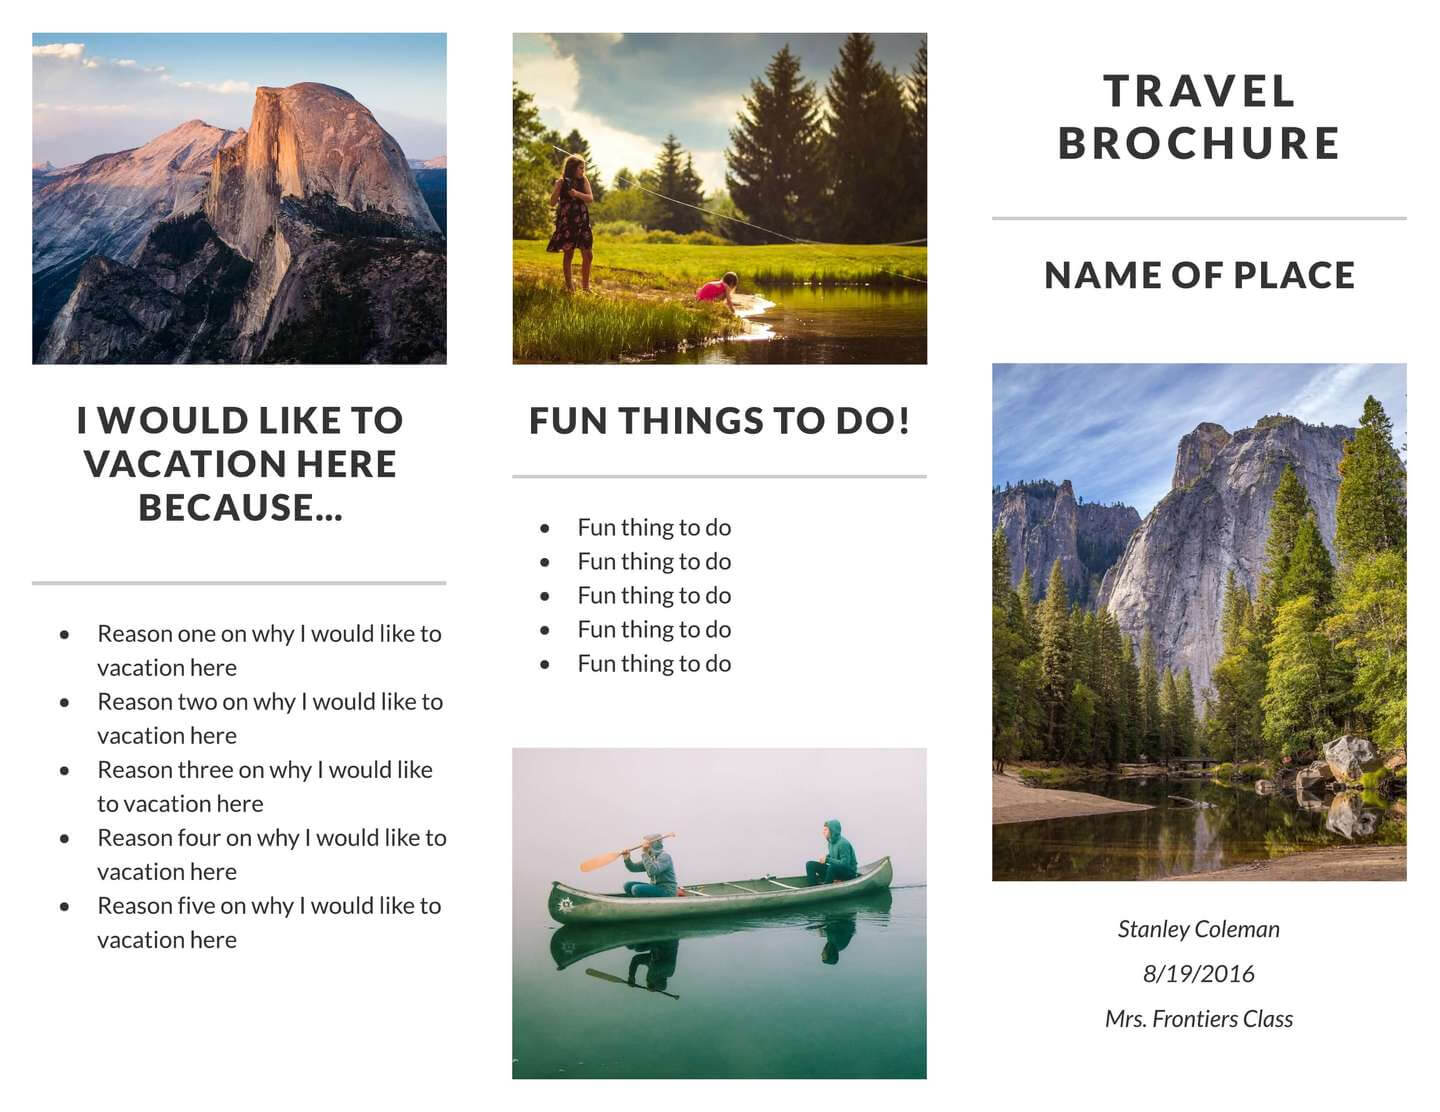 Free Travel Brochure Templates & Examples [8 Free Templates] Inside Travel And Tourism Brochure Templates Free